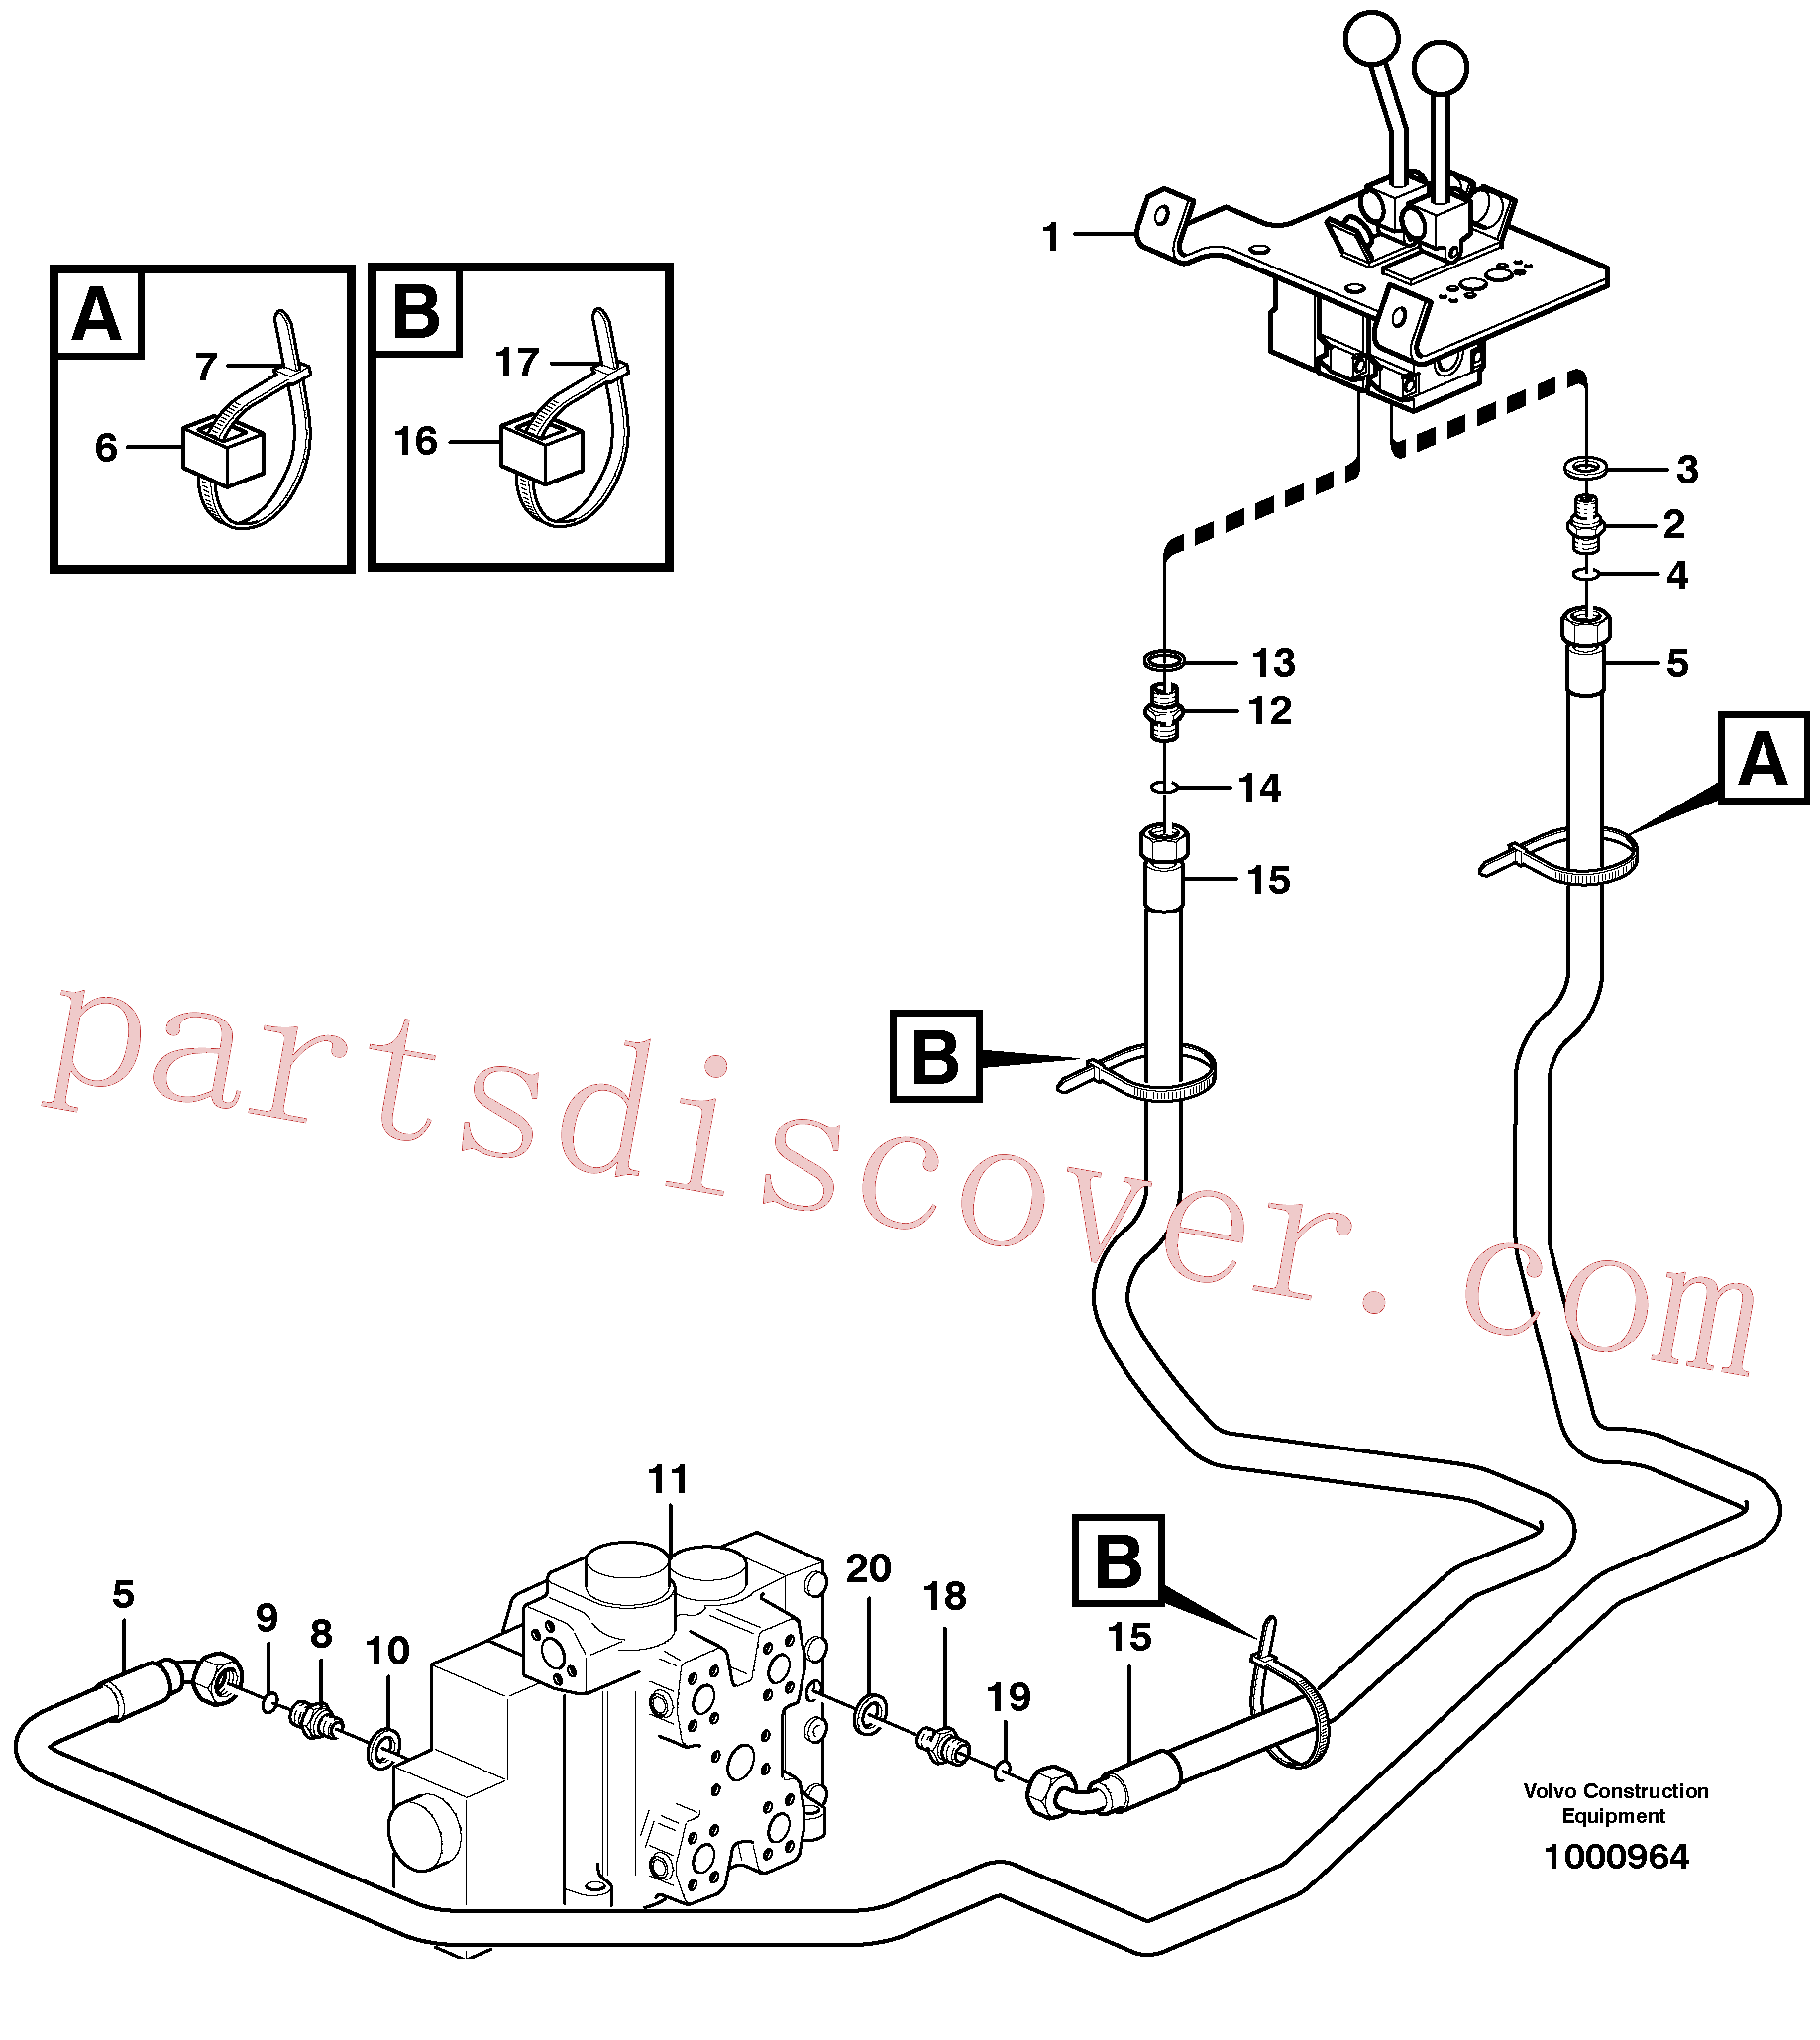 VOE936711 for Volvo Servo - hydraulic, control lines, lift(1000964 assembly)